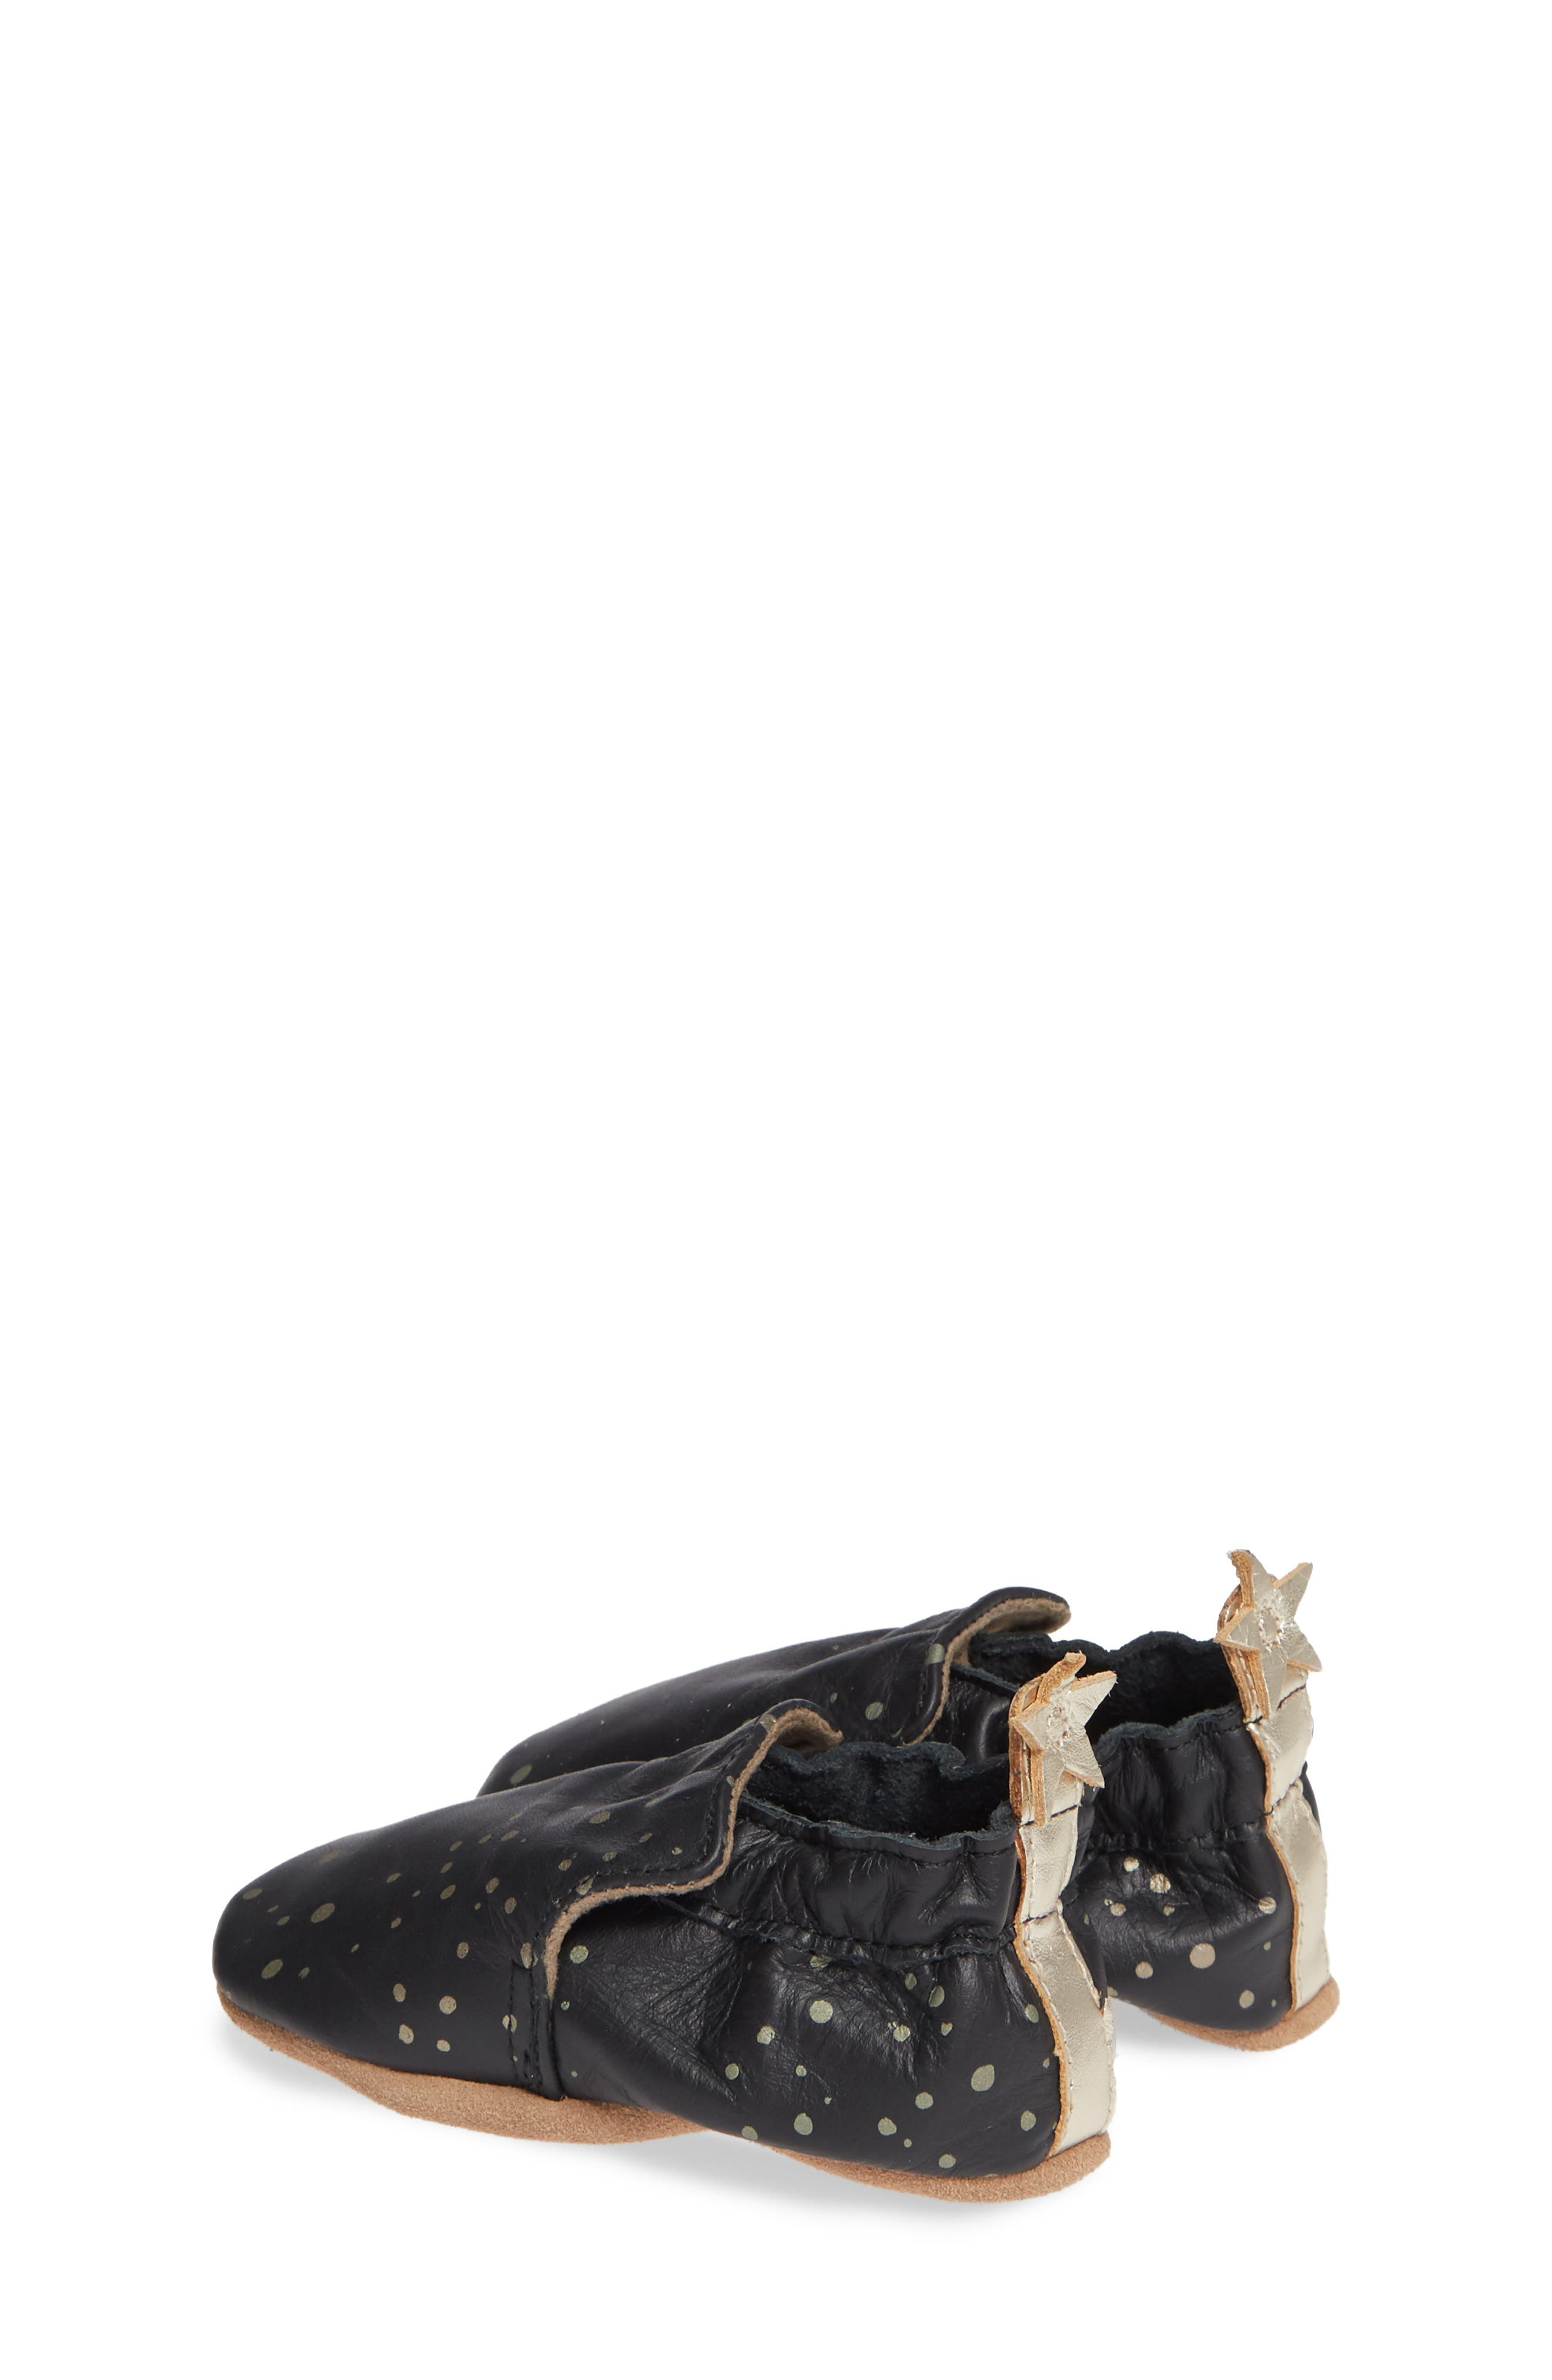 Galaxy Girl Moccasin Crib Shoe,                             Alternate thumbnail 3, color,                             BLACK